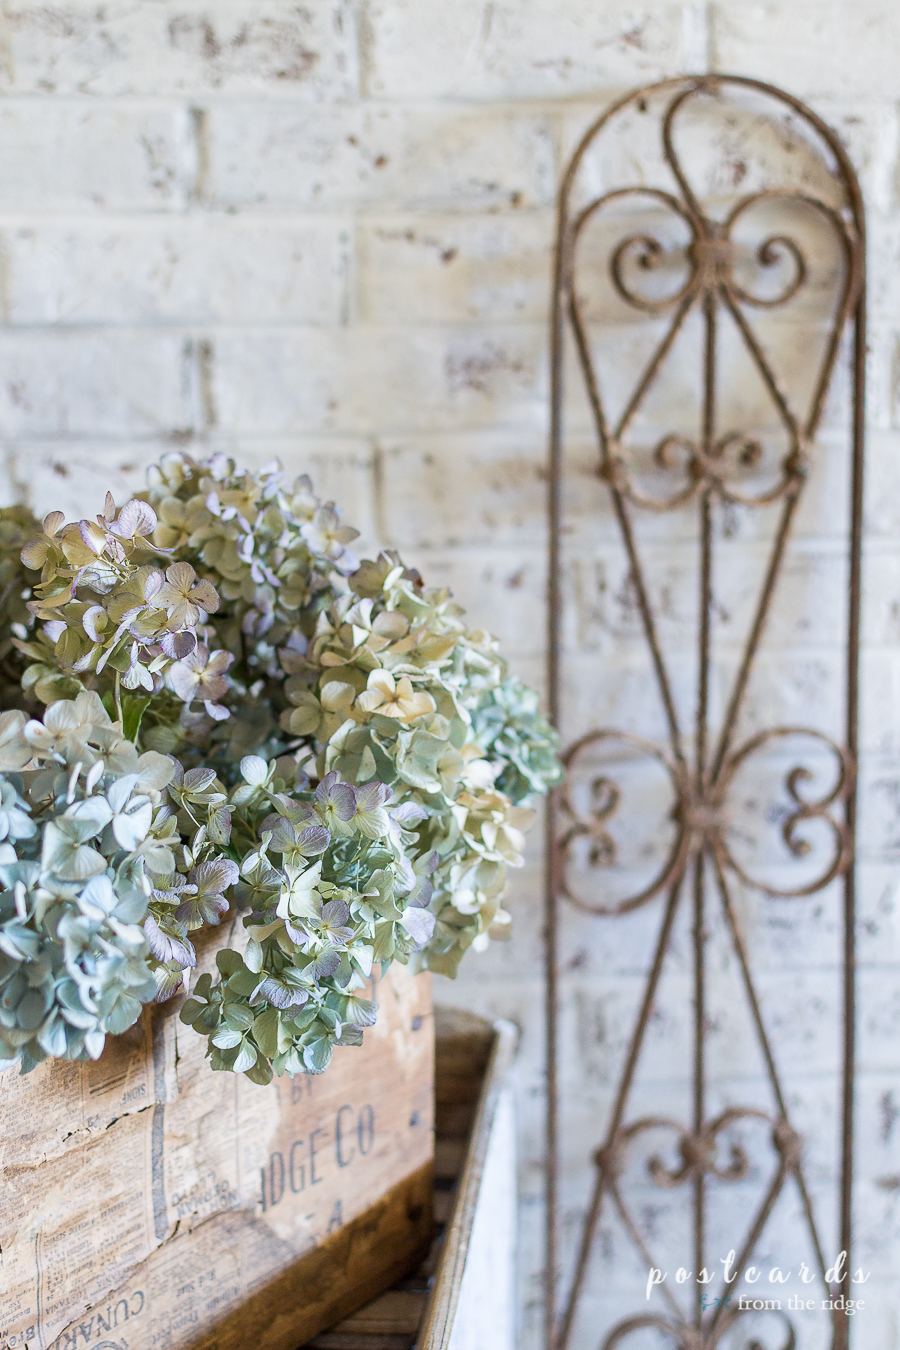 dried hydrangeas in an antique wooden crate